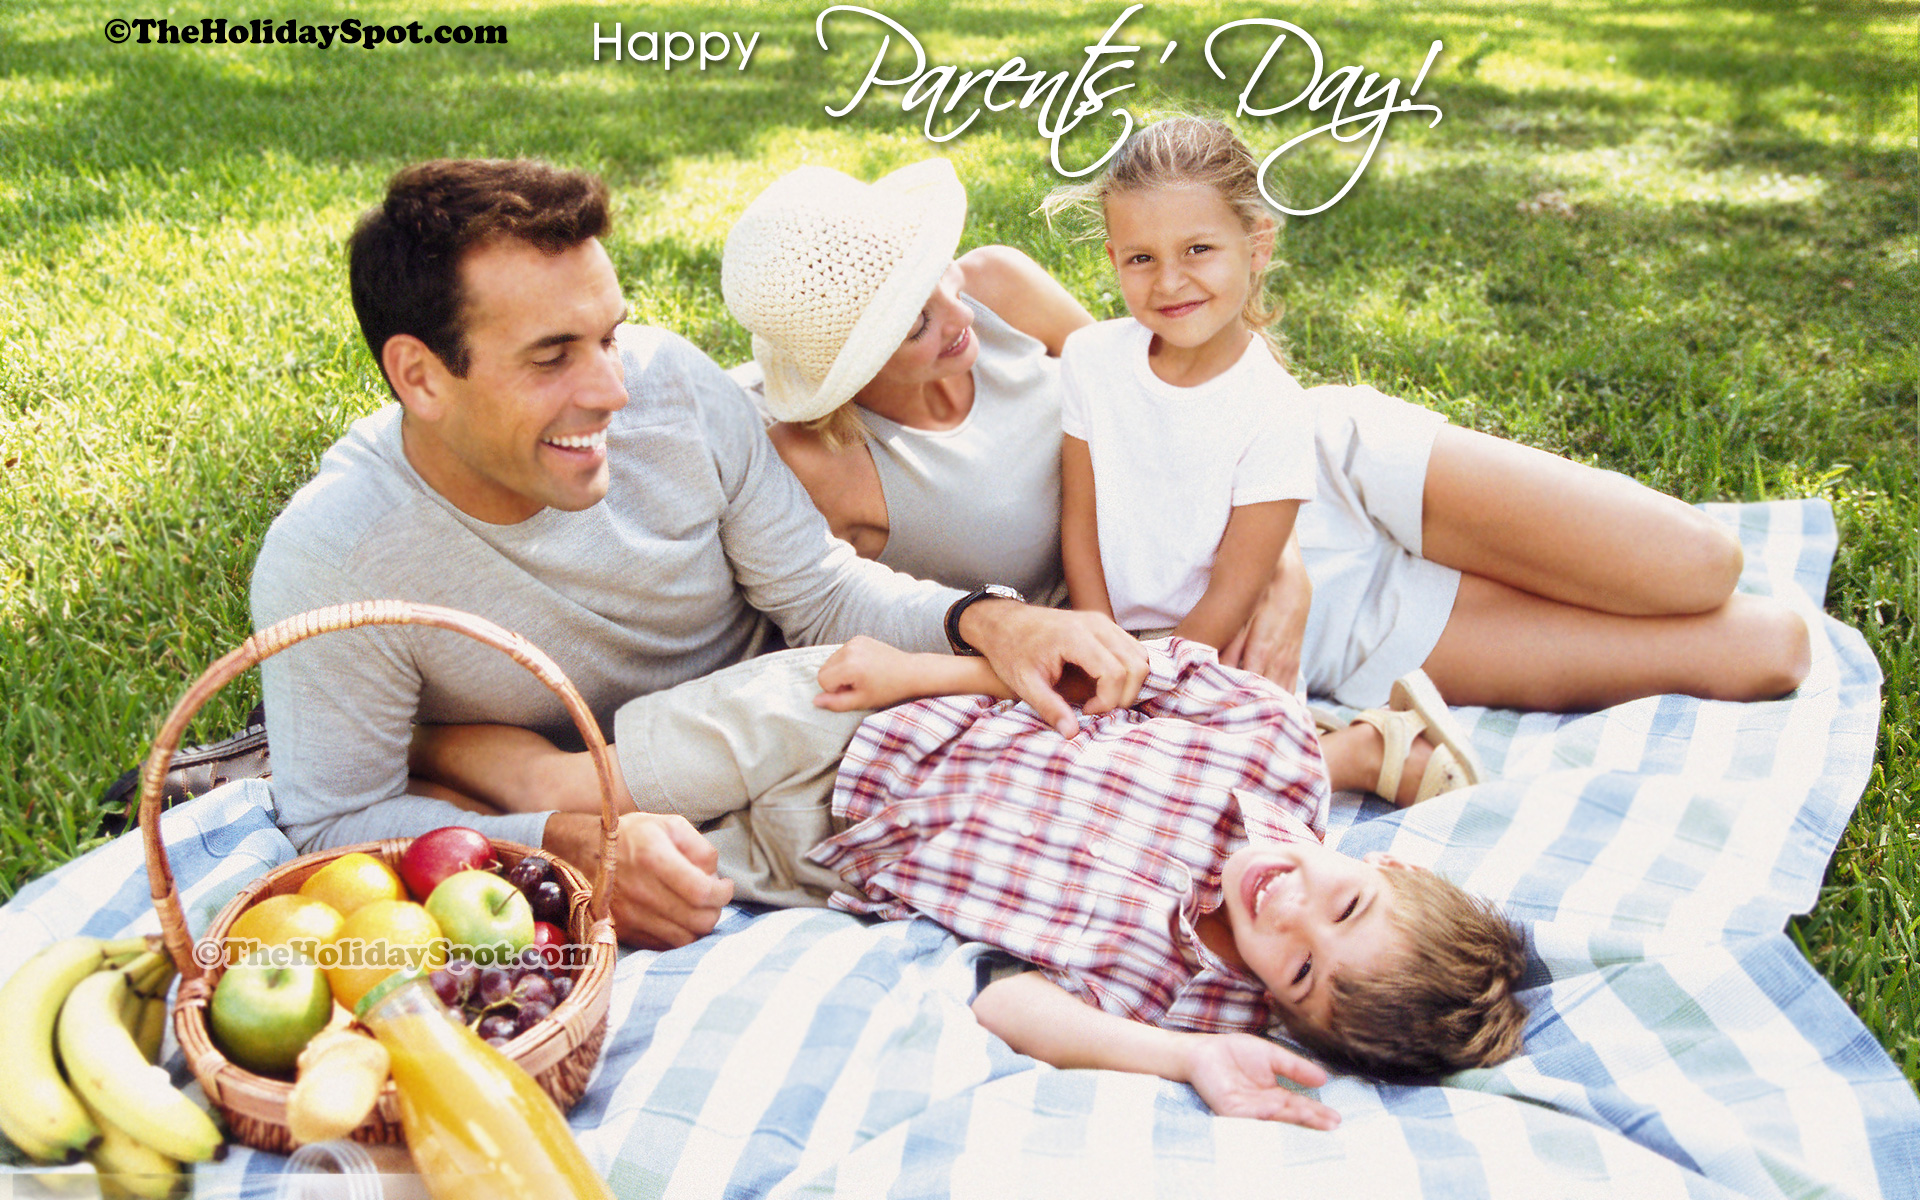 High Definition Illustration Of A Family Having Fun On Parentu0027s Day.